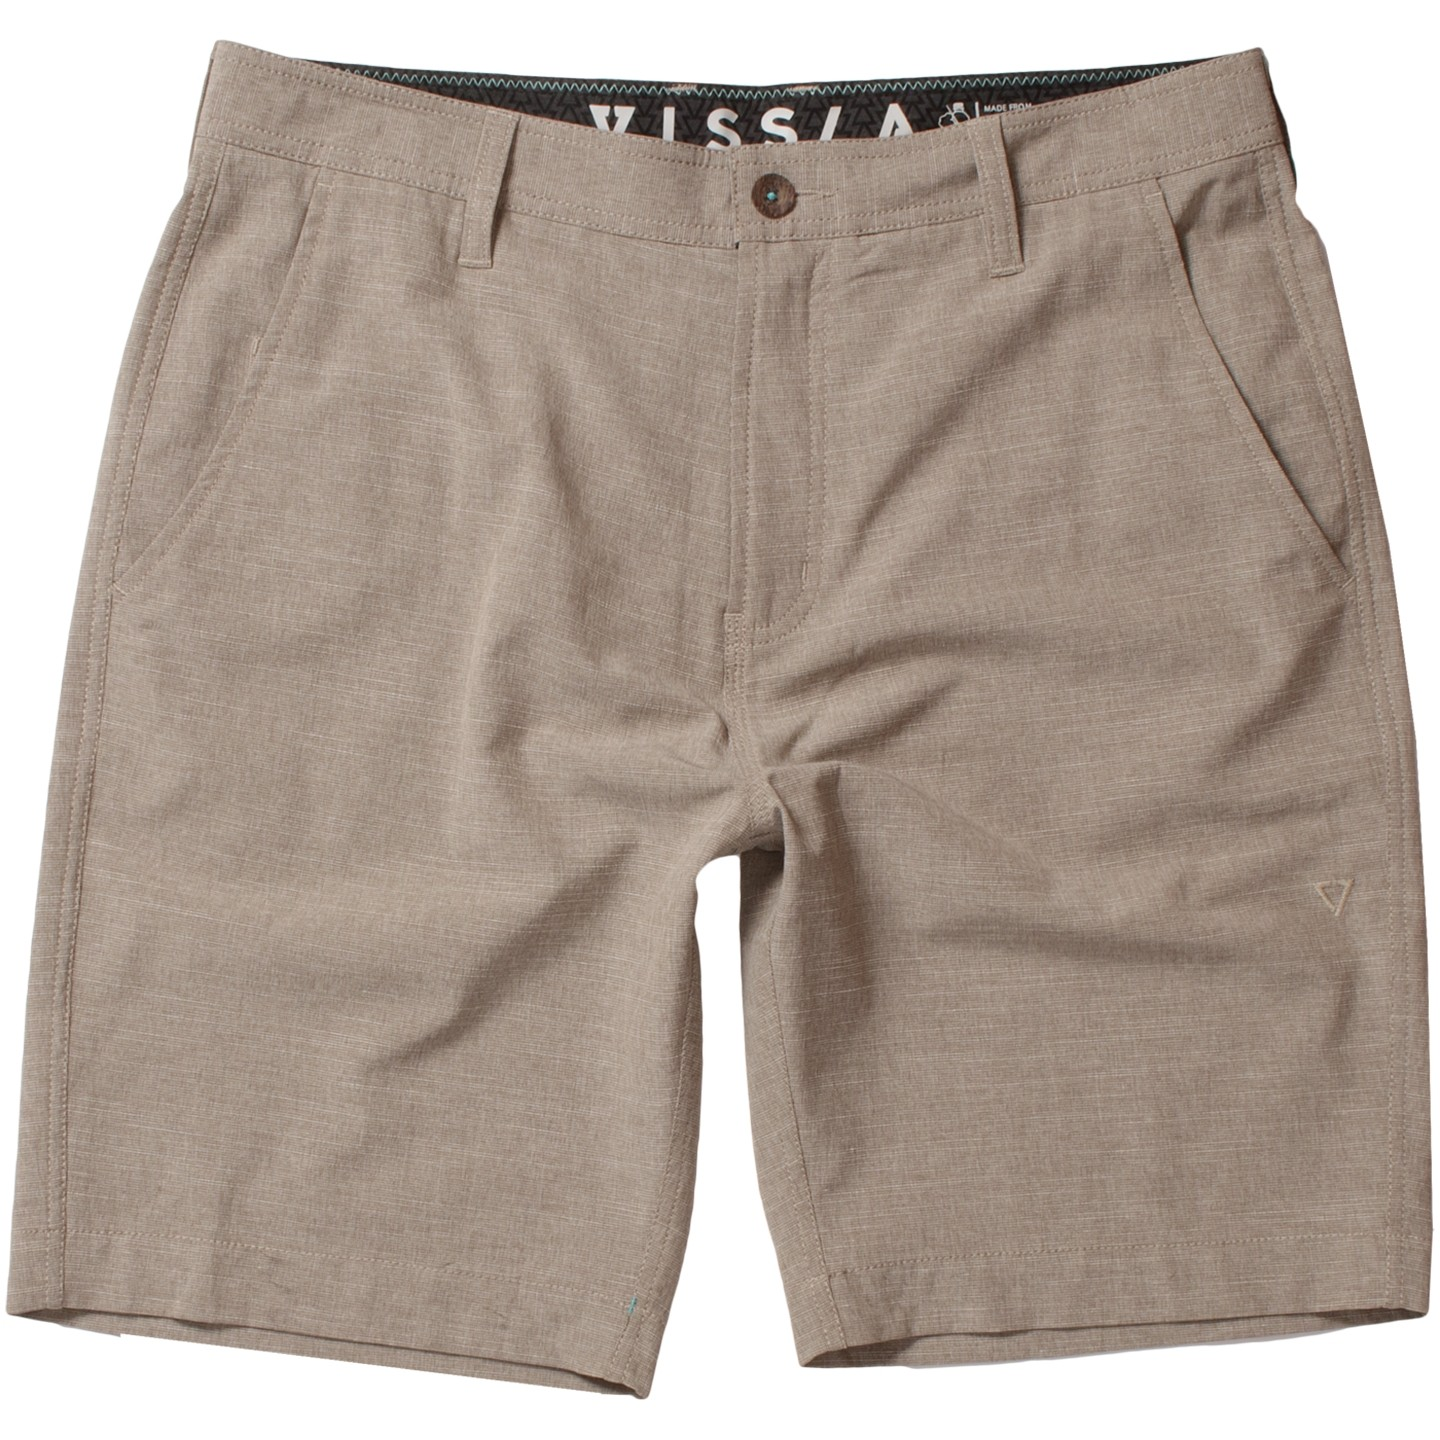 "Vissla Fin Rope 20"" Hybrid Walkshorts (Men's)"